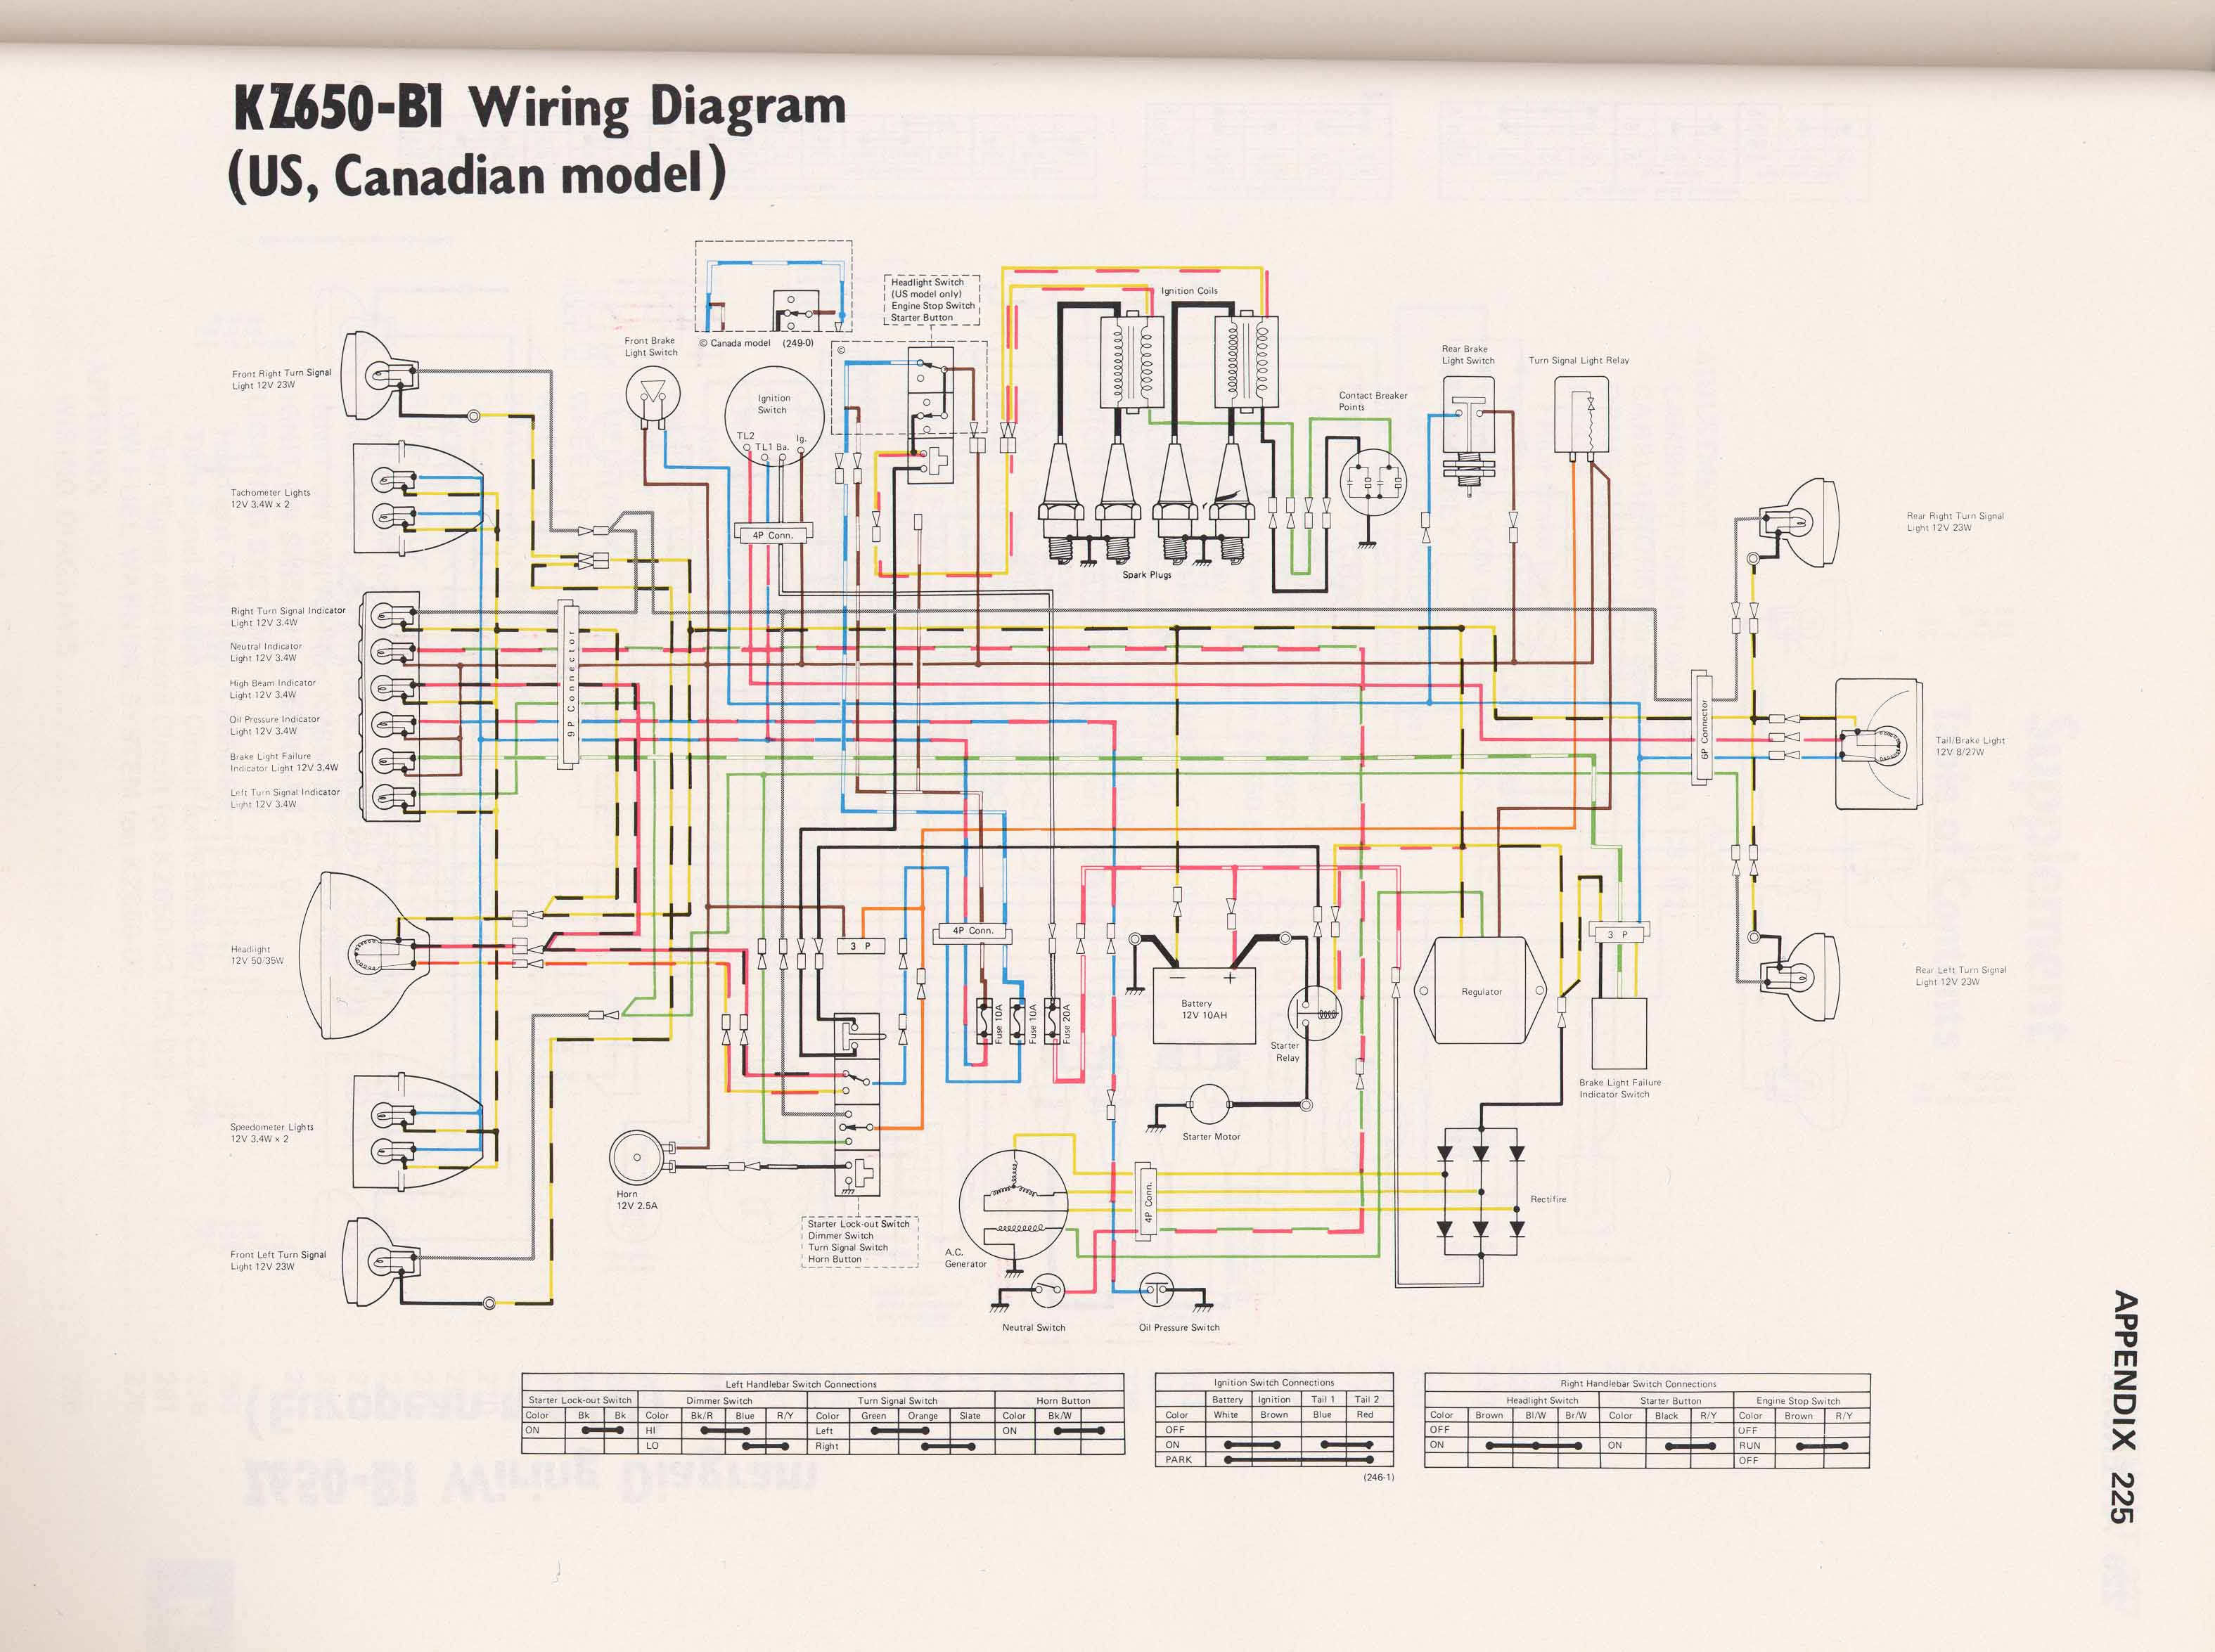 KZ650 B1 ignition wiring diagram starter motor wiring diagram \u2022 wiring Kawasaki Mule 3010 Parts Diagram at webbmarketing.co